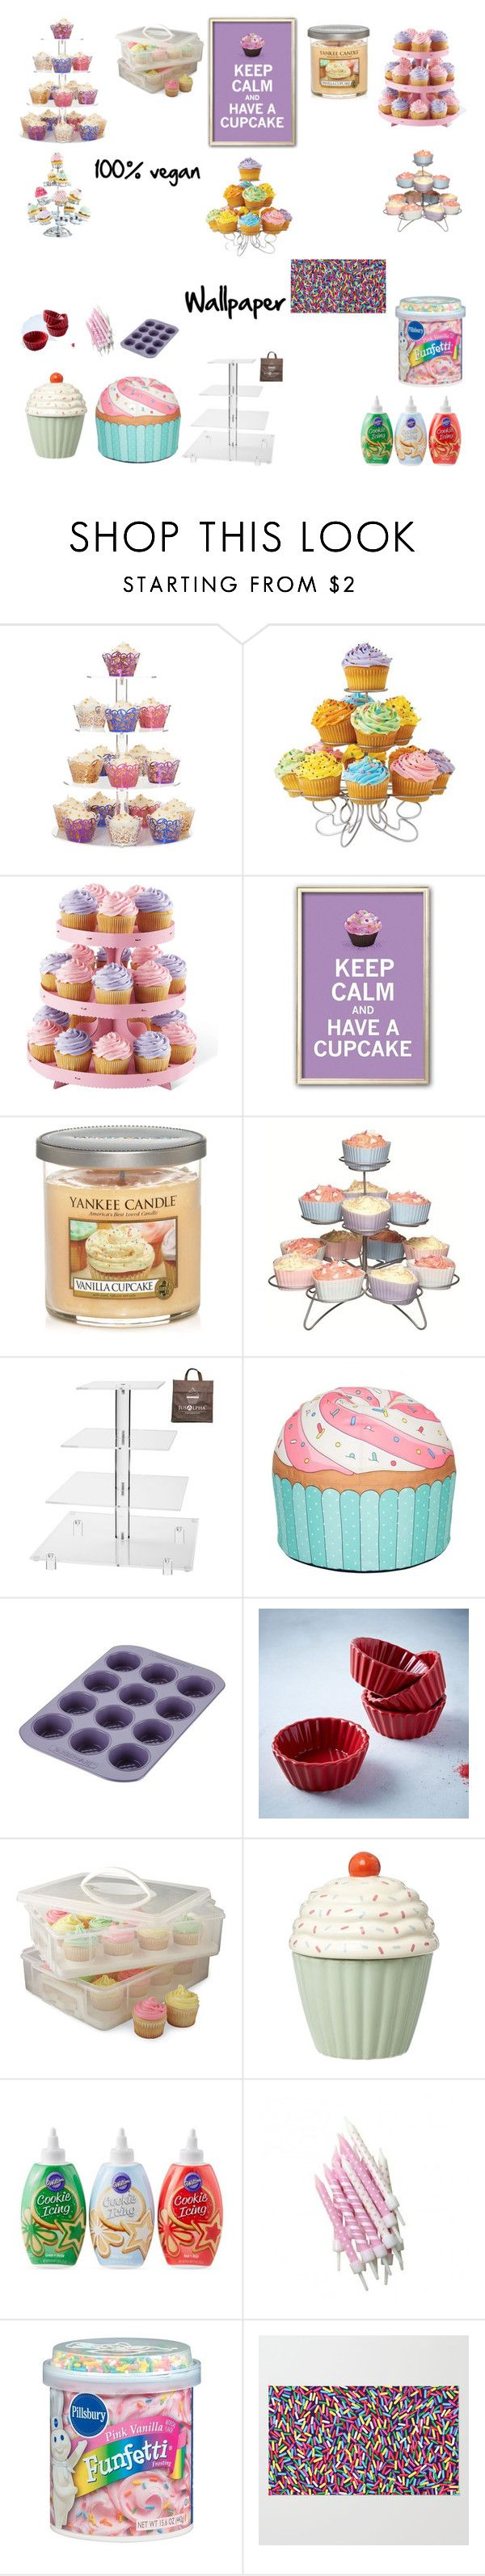 """""""The cupcake room"""" by mhoman ❤ liked on Polyvore featuring interior, interiors, interior design, home, home decor, interior decorating, Yankee Candle, Sweetly Does it, Woouf! and Farberware"""